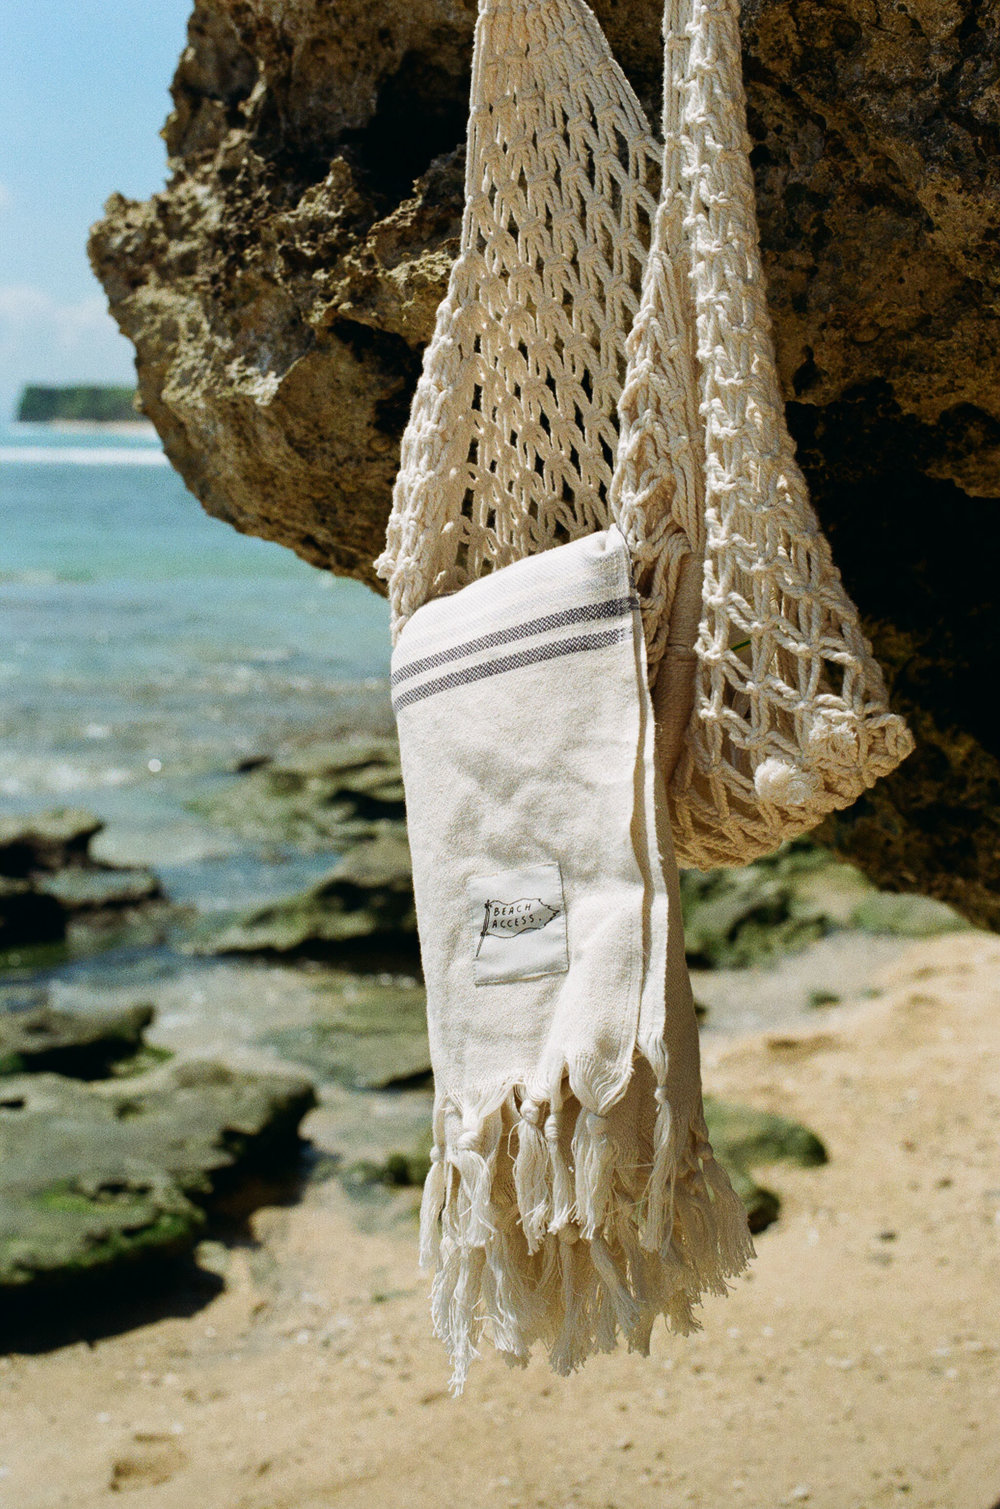 Same for the 'Tide' Bag. It's a hand-woven miracle!